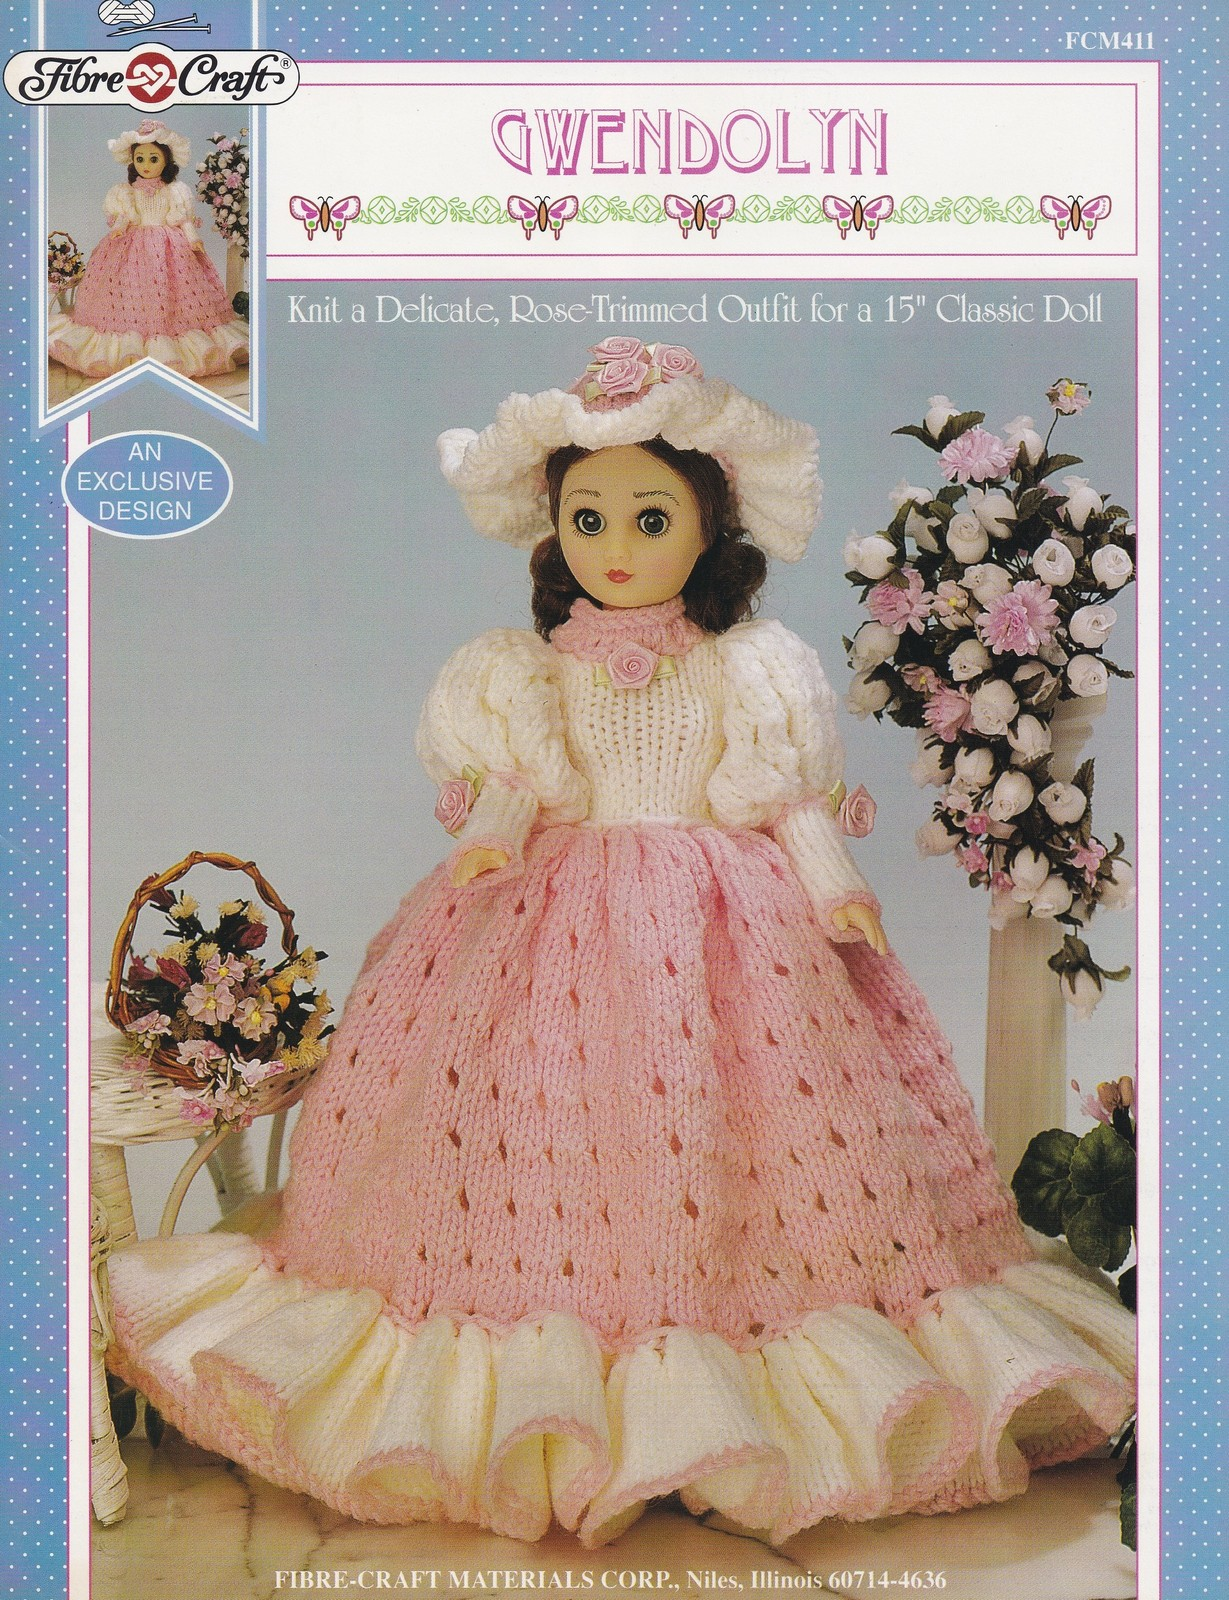 Gwendolyn fibre craft knitting doll clothes pattern for Fibre craft 18 inch doll